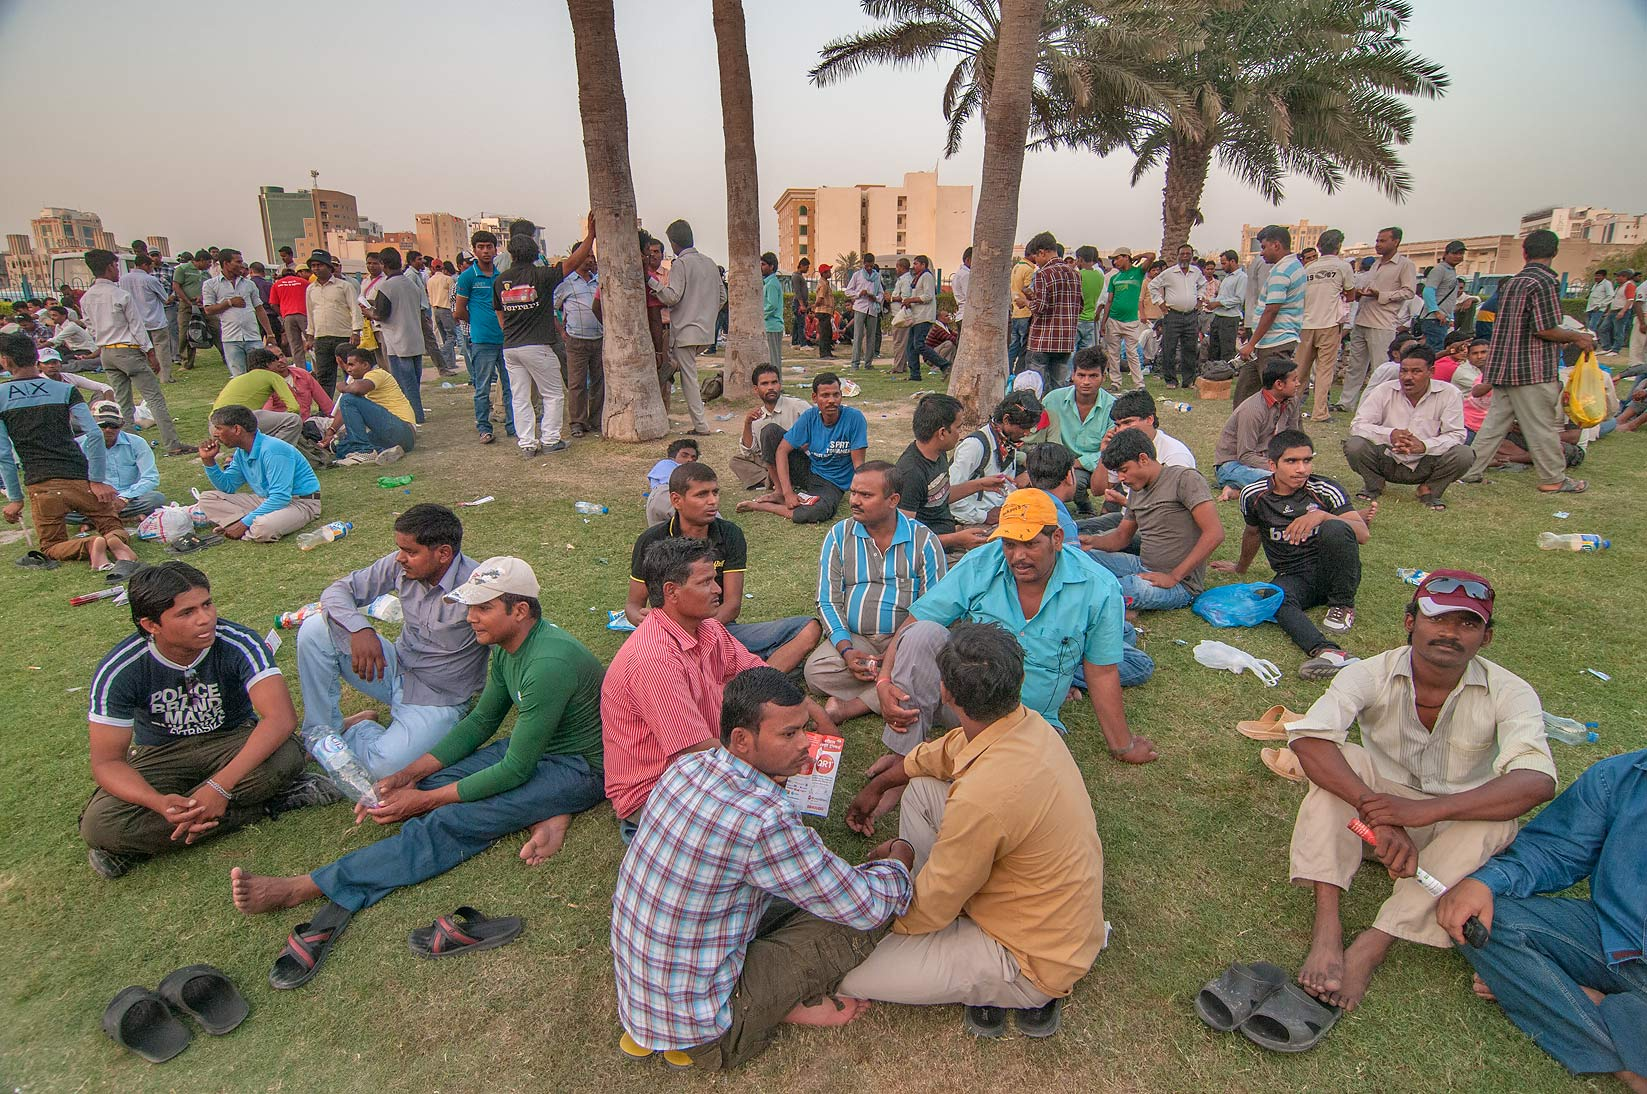 Workers gathering near Central Bus Station Al Ghanim on Friday evening. Doha, Qatar